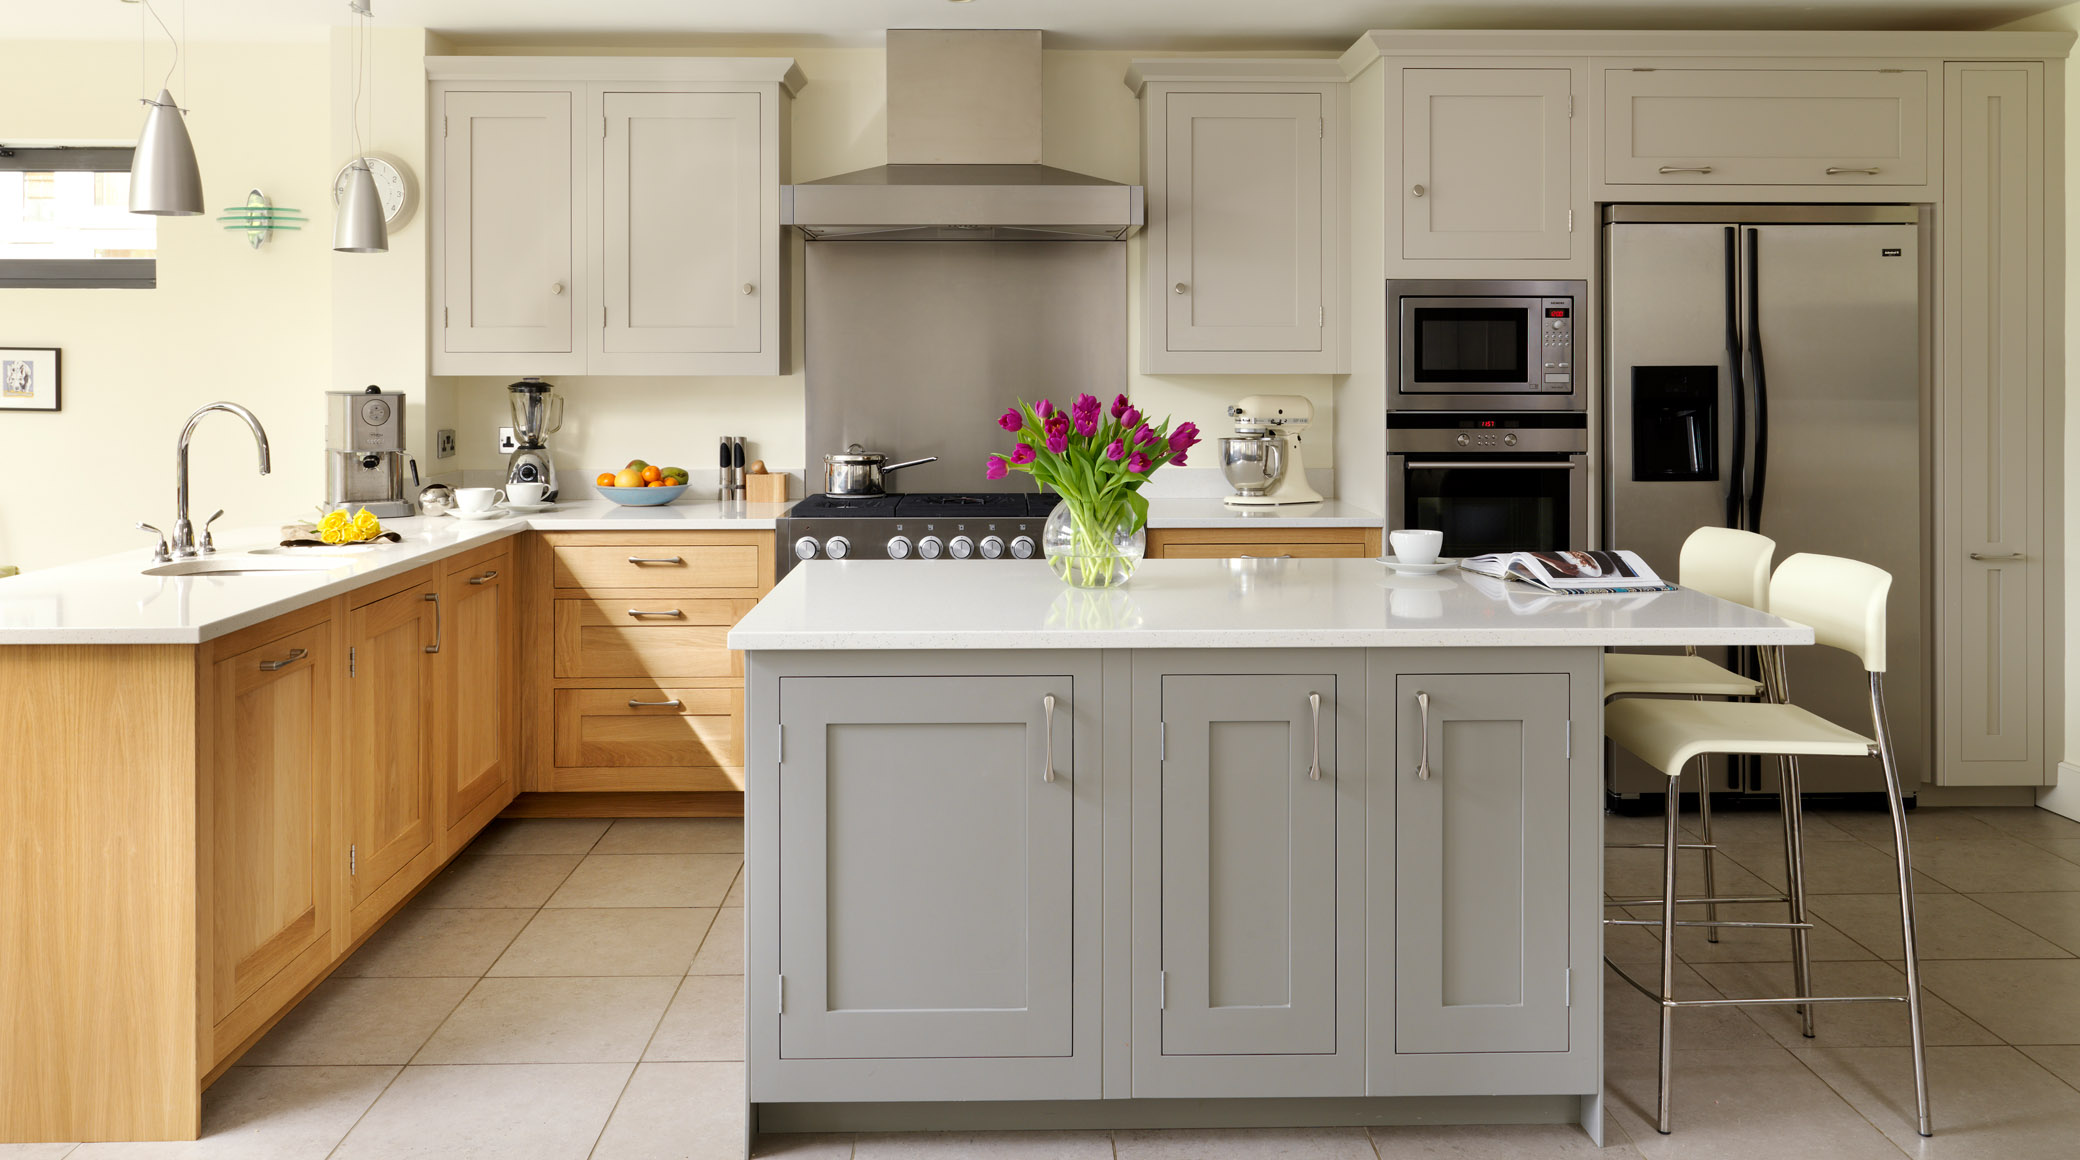 Oak painted shaker kitchen gallery kitchen pinterest for Shaker style kitchen units